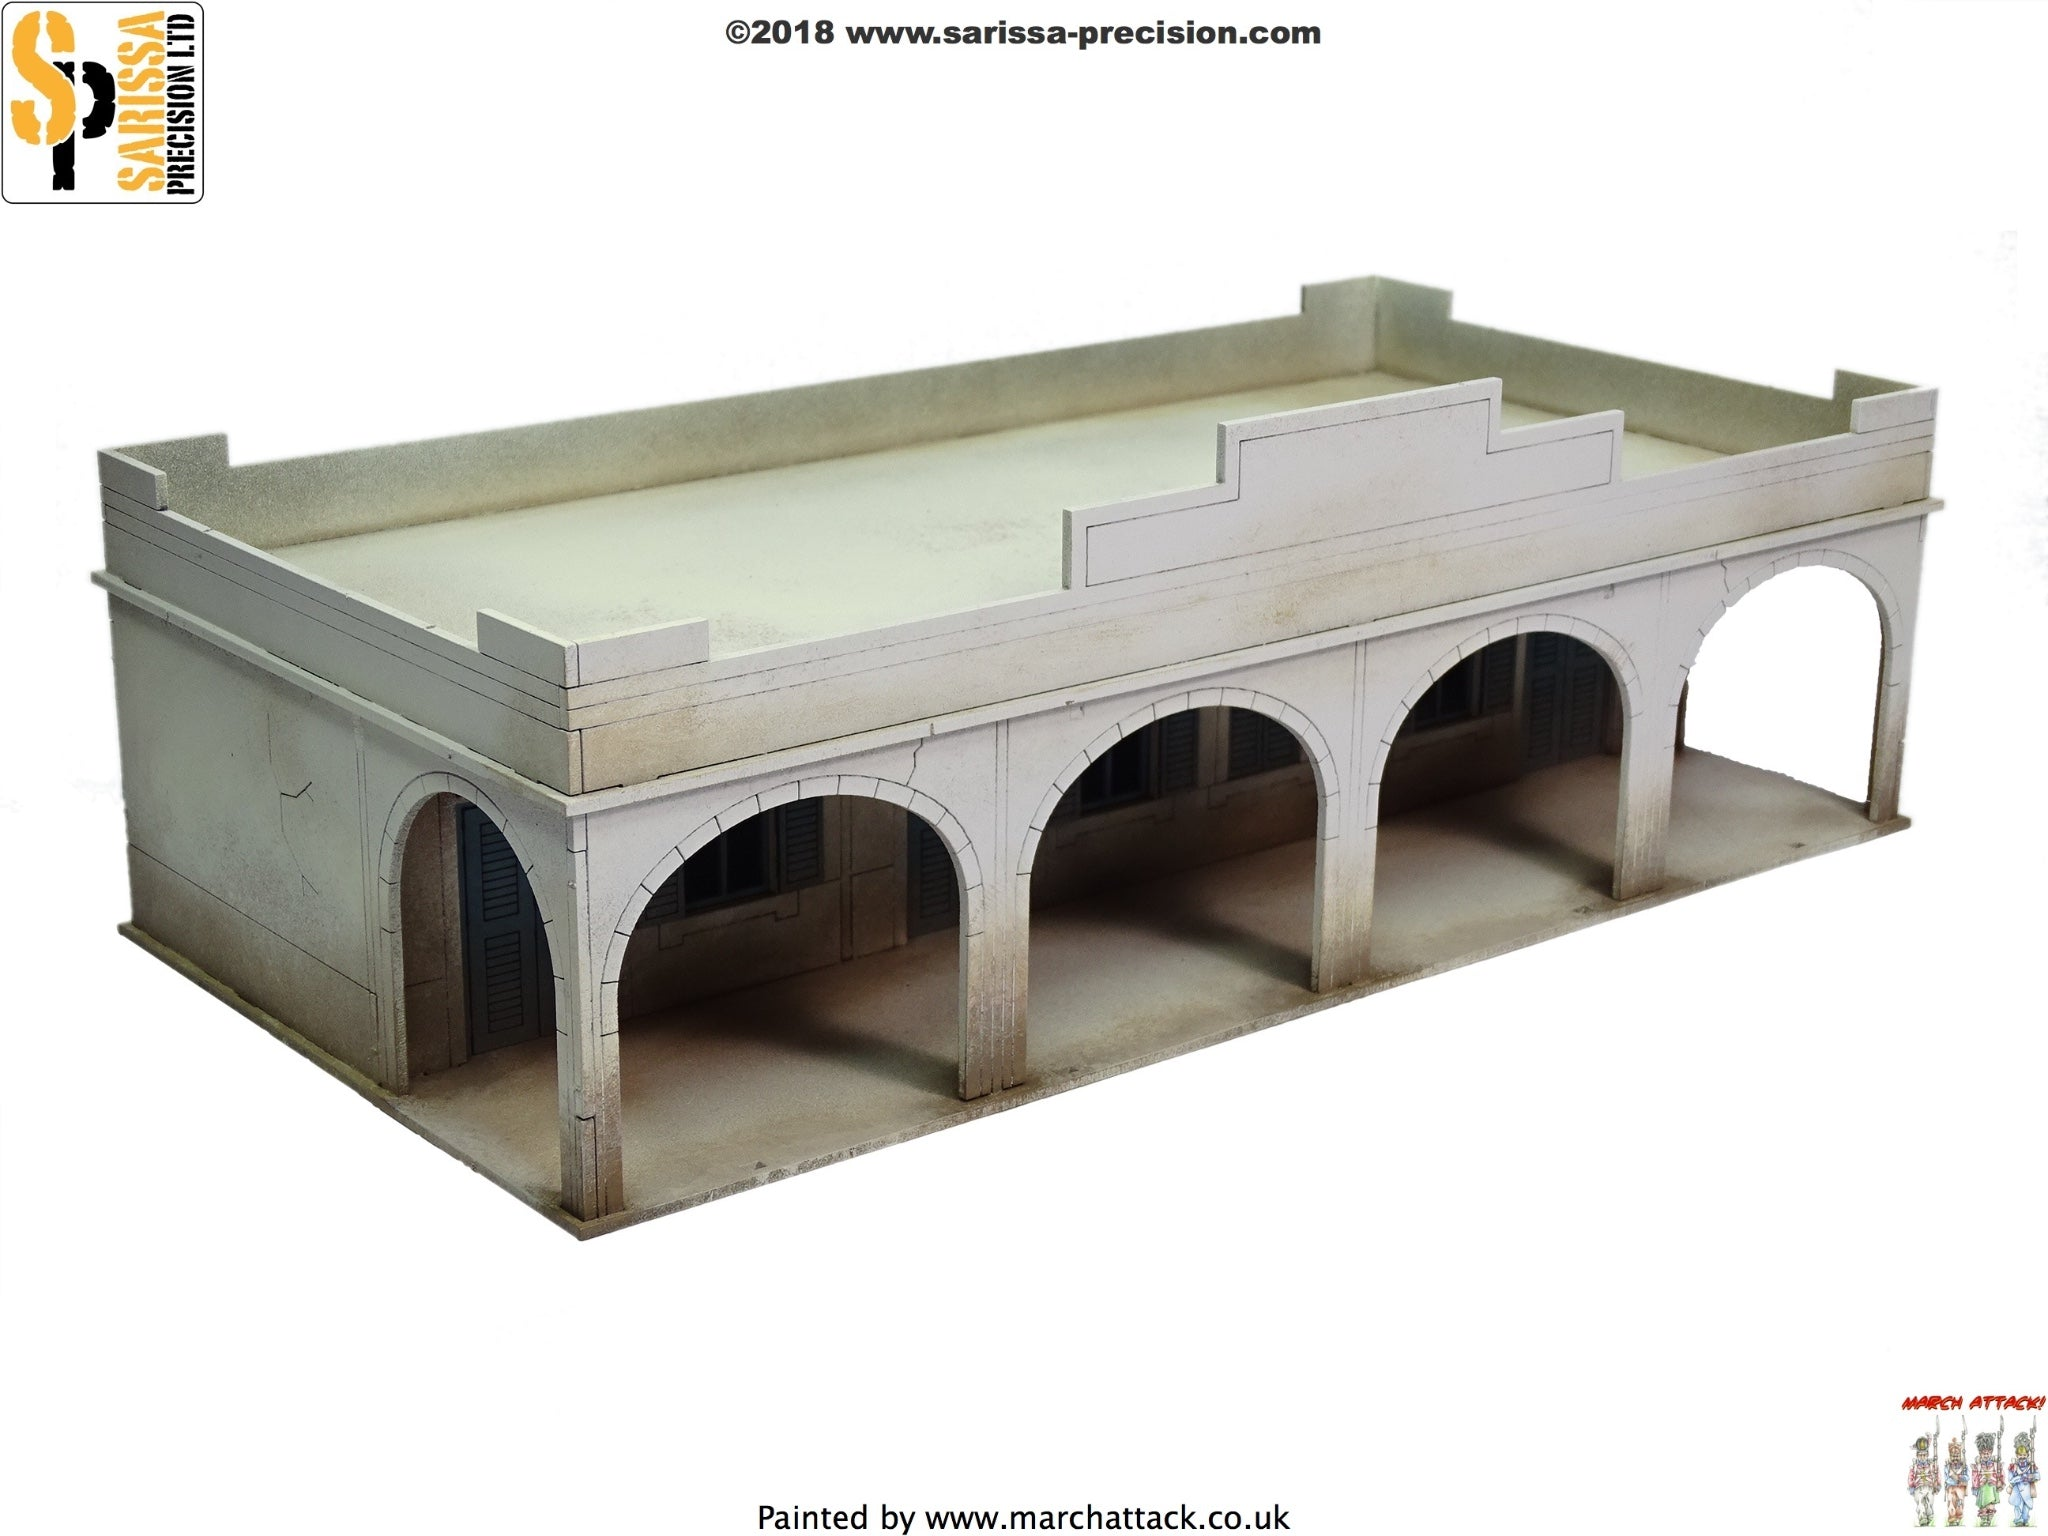 Single-Storey Souk Building - 28mm